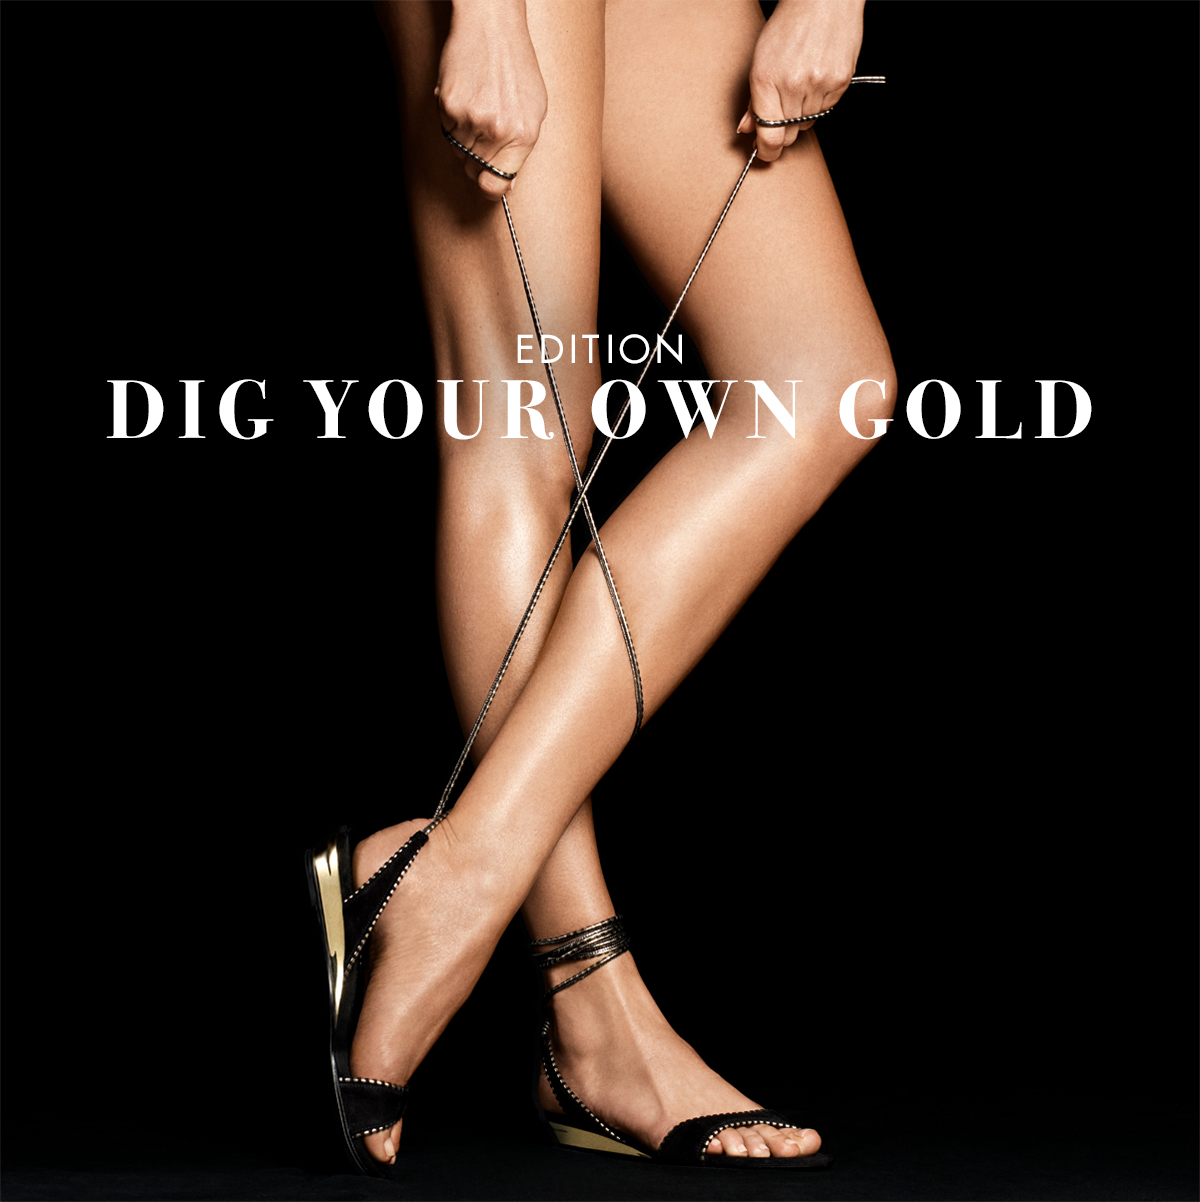 Edition: Dig Your Own Gold